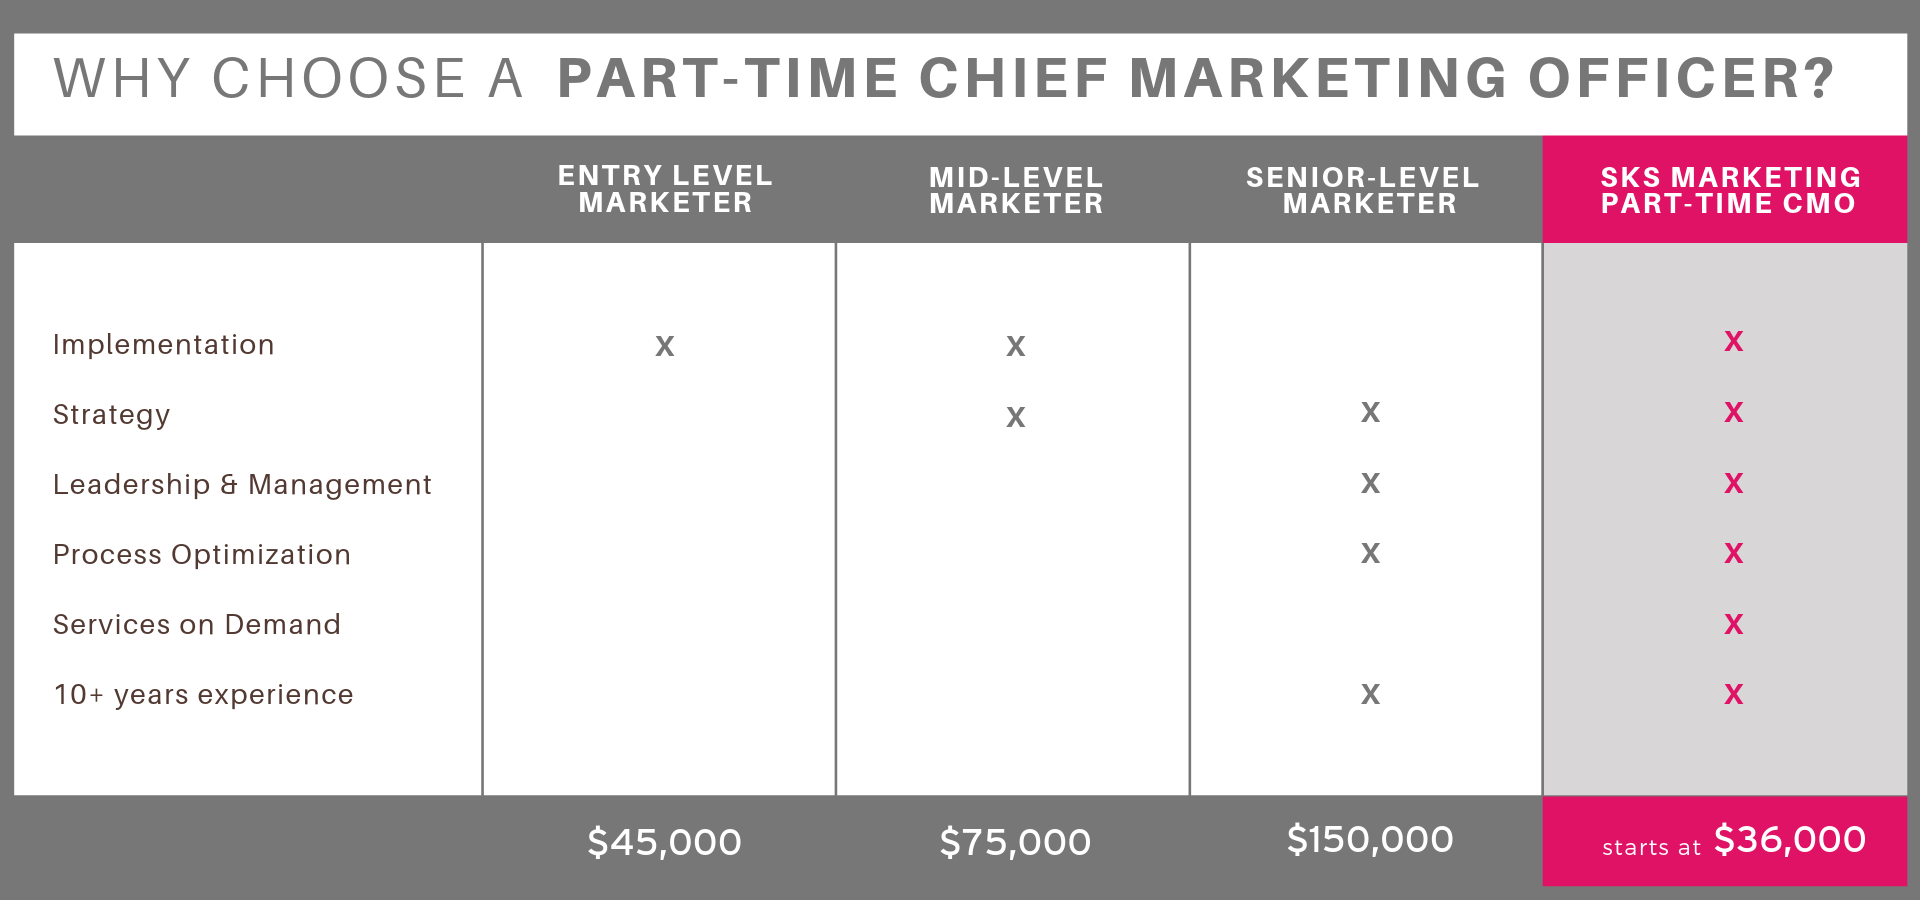 SKS Part-Time CMO Table (3).png